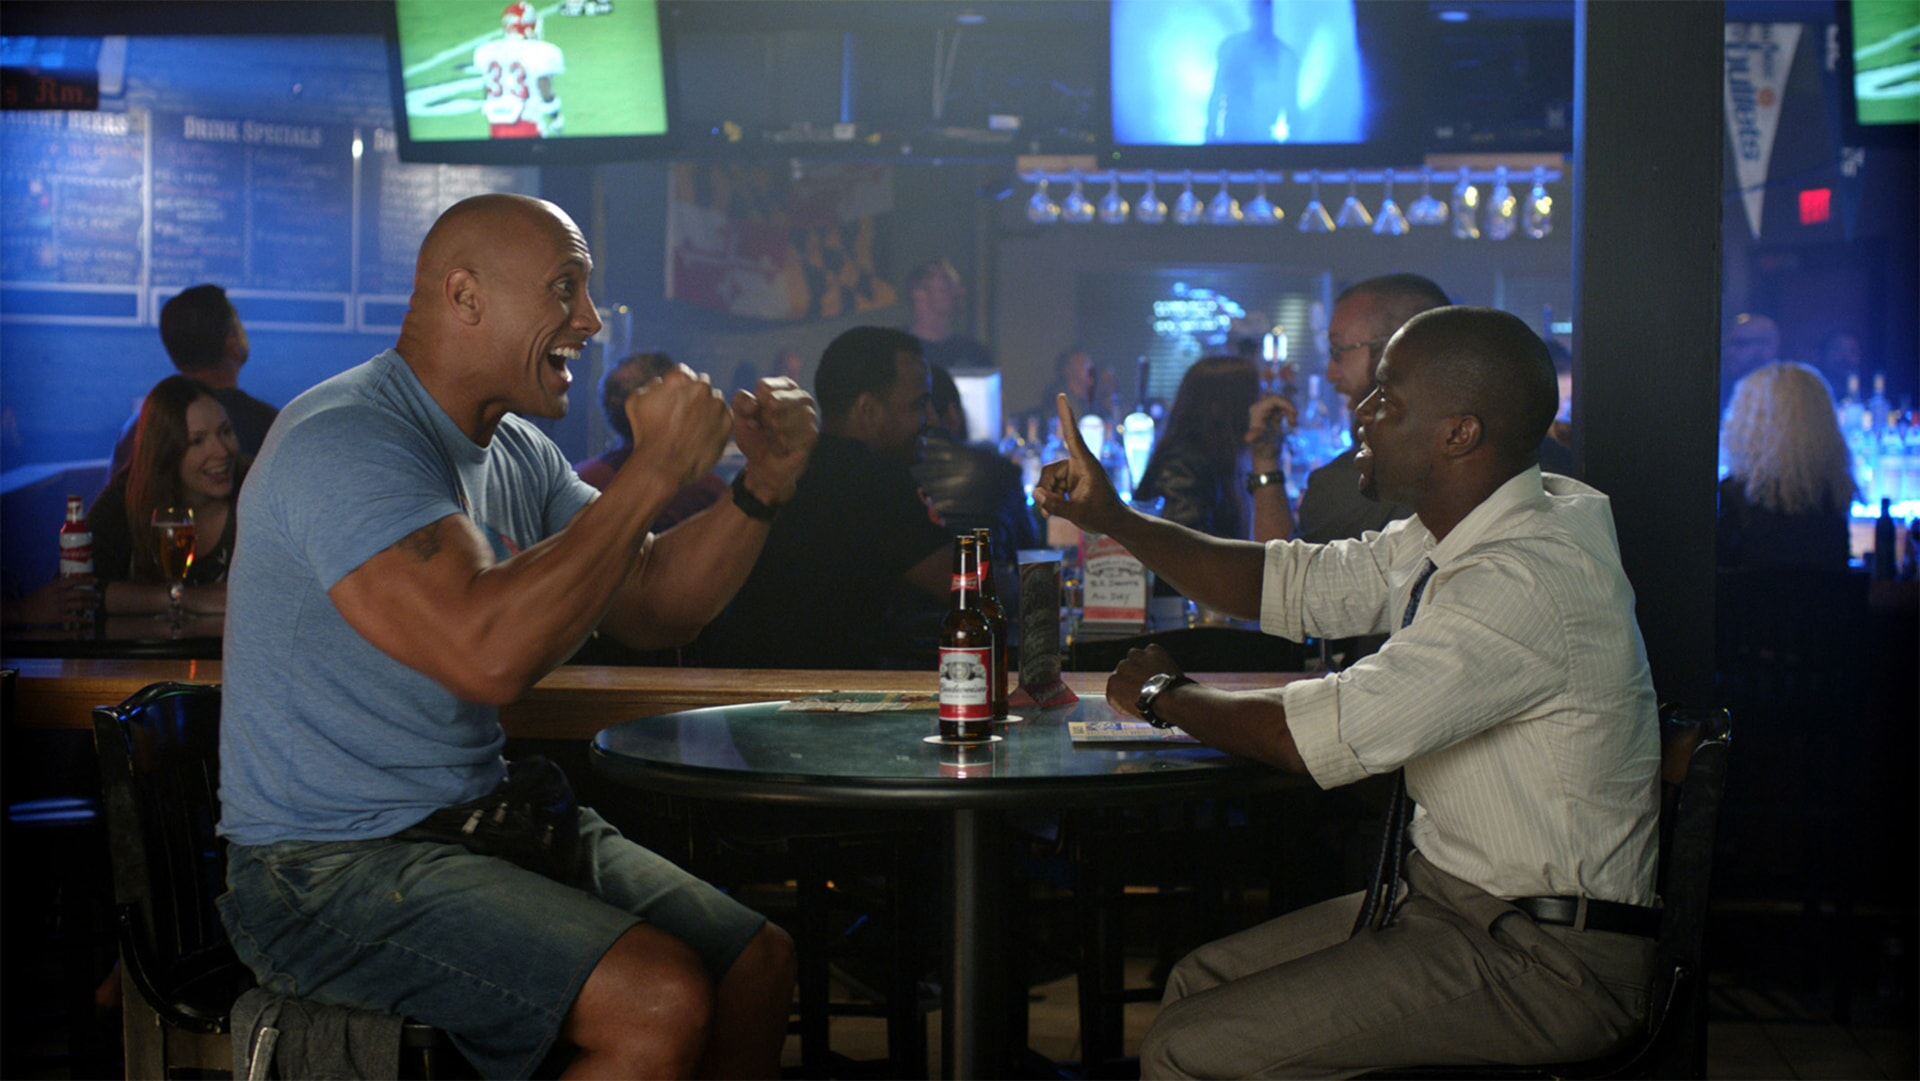 DWAYNE JOHNSON as Bob and KEVIN HART as Calvin laughing together in a restaurant